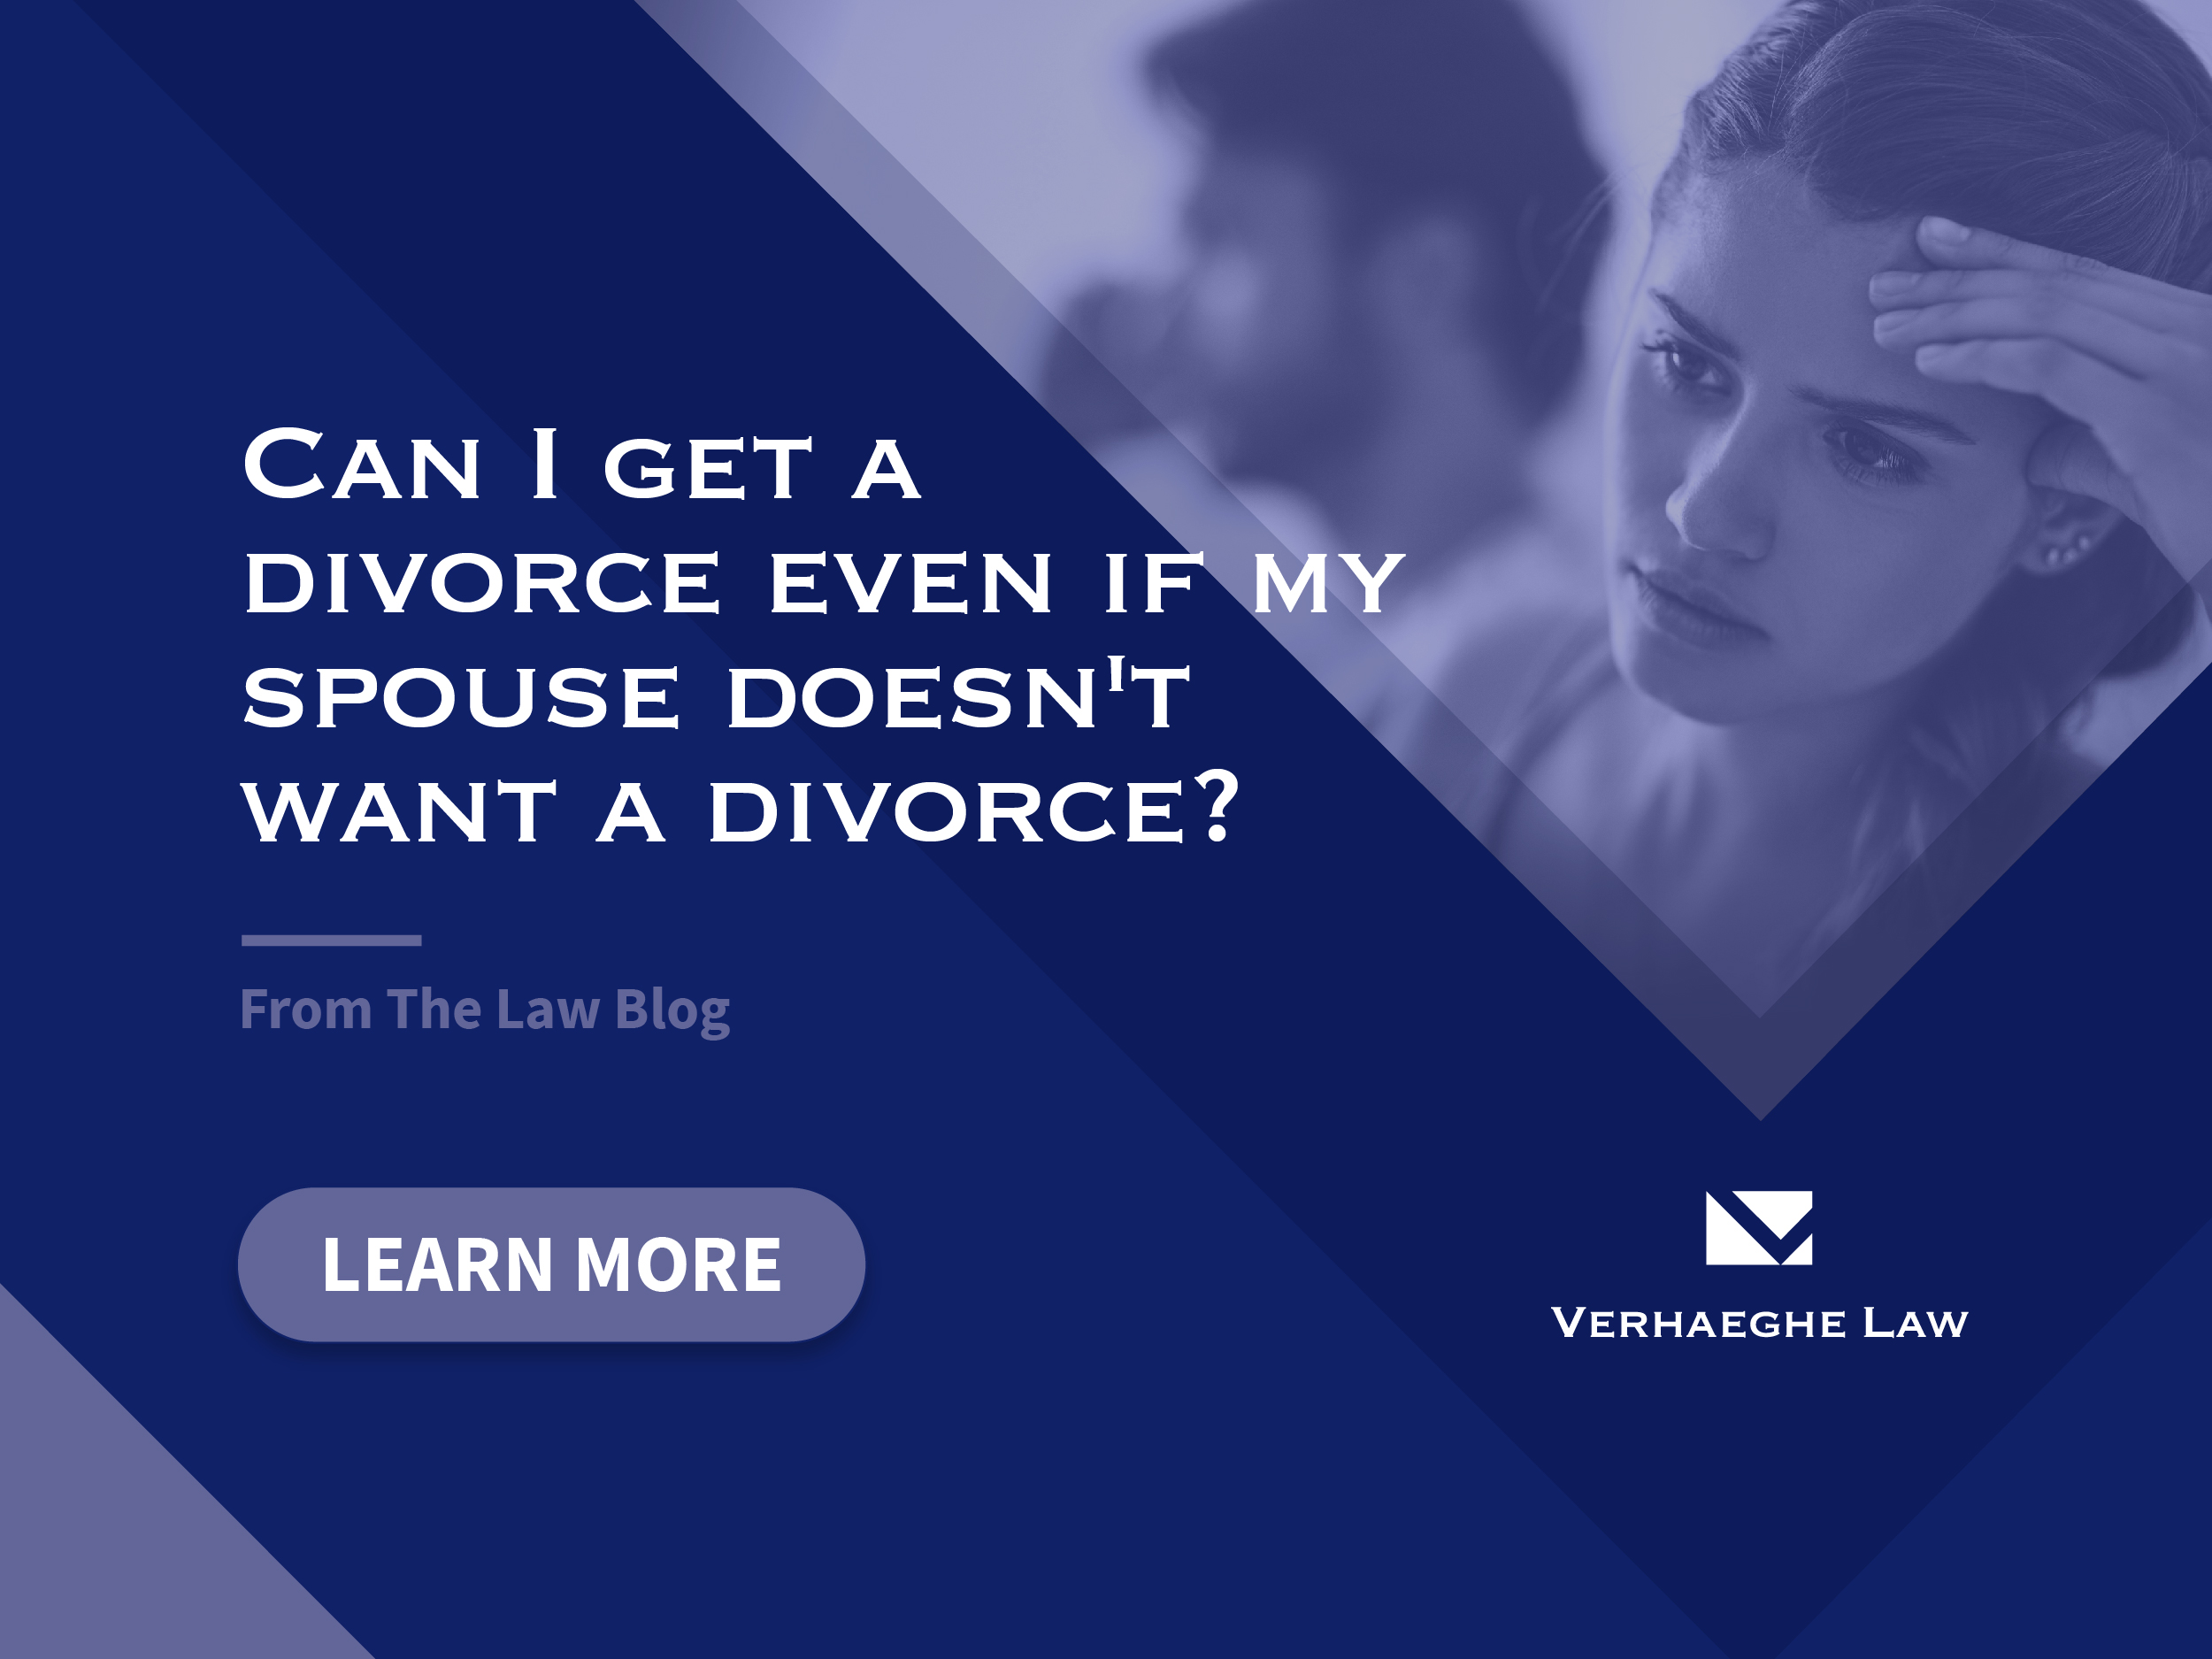 Can I Get A Divorce Even If My Spouse Doesn't Want A Divorce?